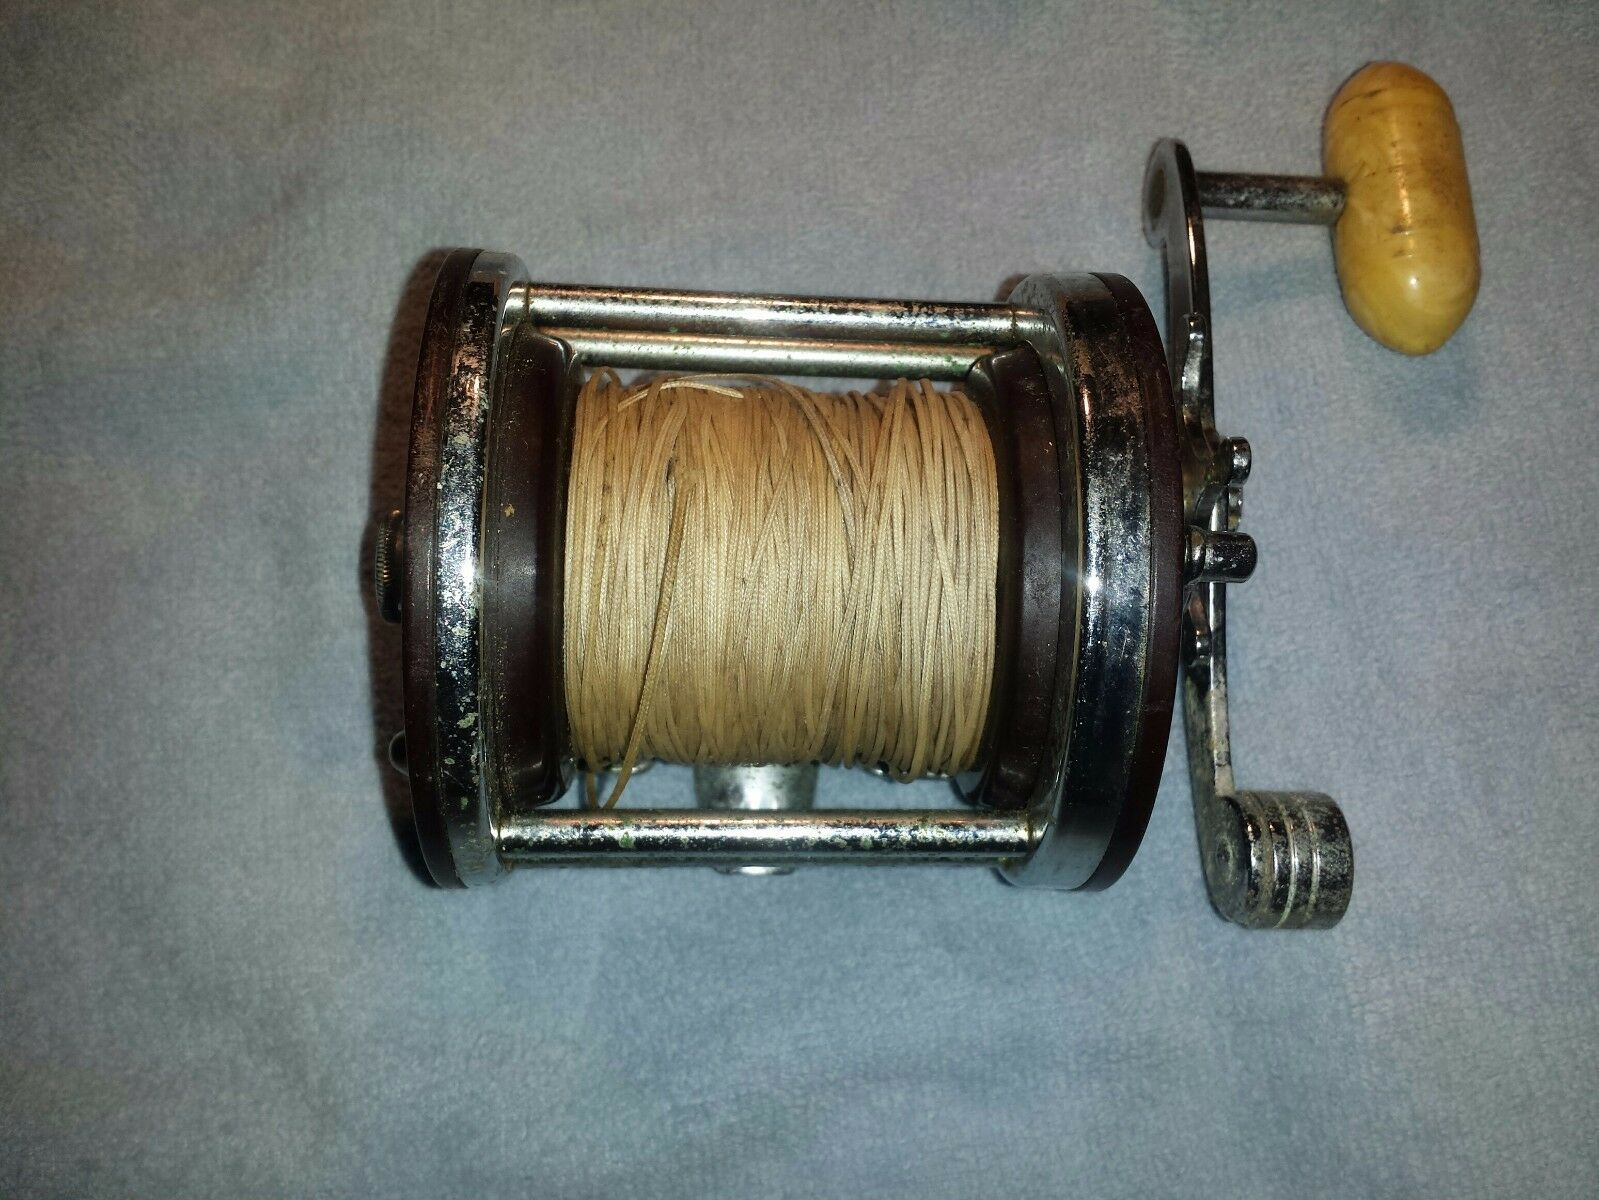 Penn 500 Jigmaster Conventional Fishing Reel    Made in U.S.A.